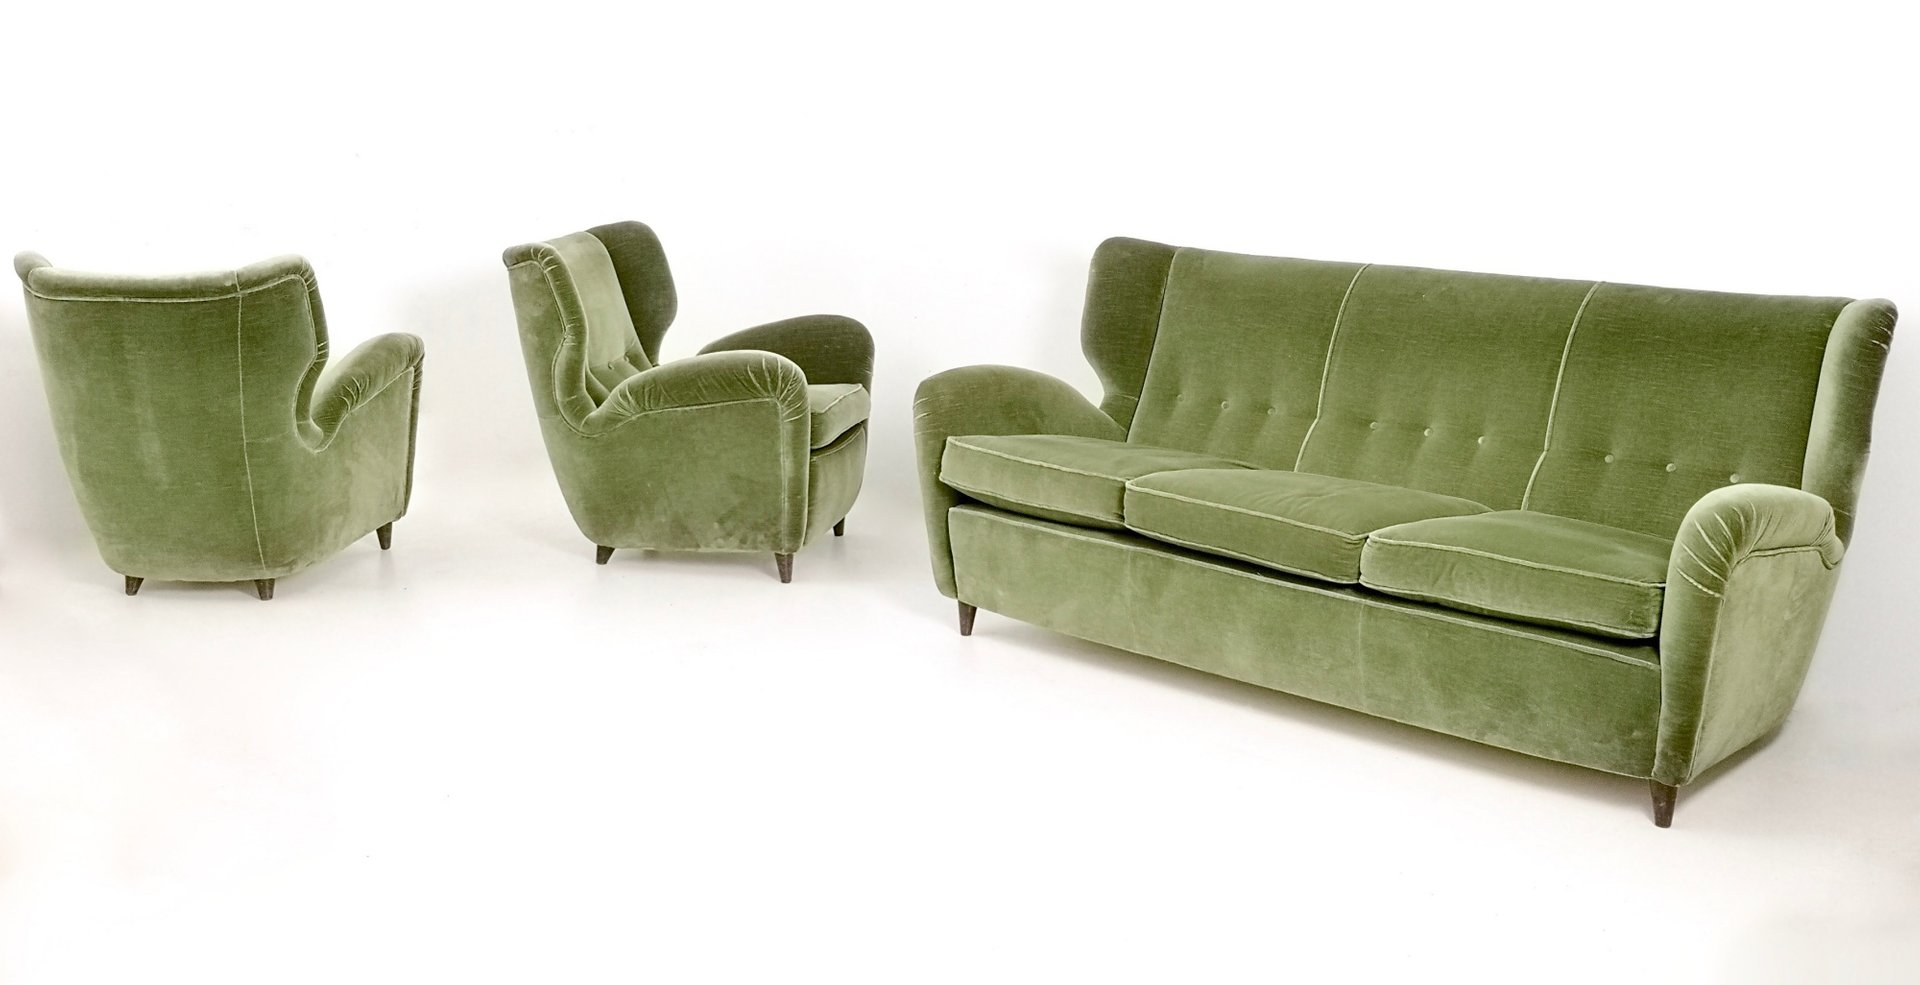 Italian Olive Green Velvet Lounge Chairs, 1950s, Set Of 2 For Sale At Pamono